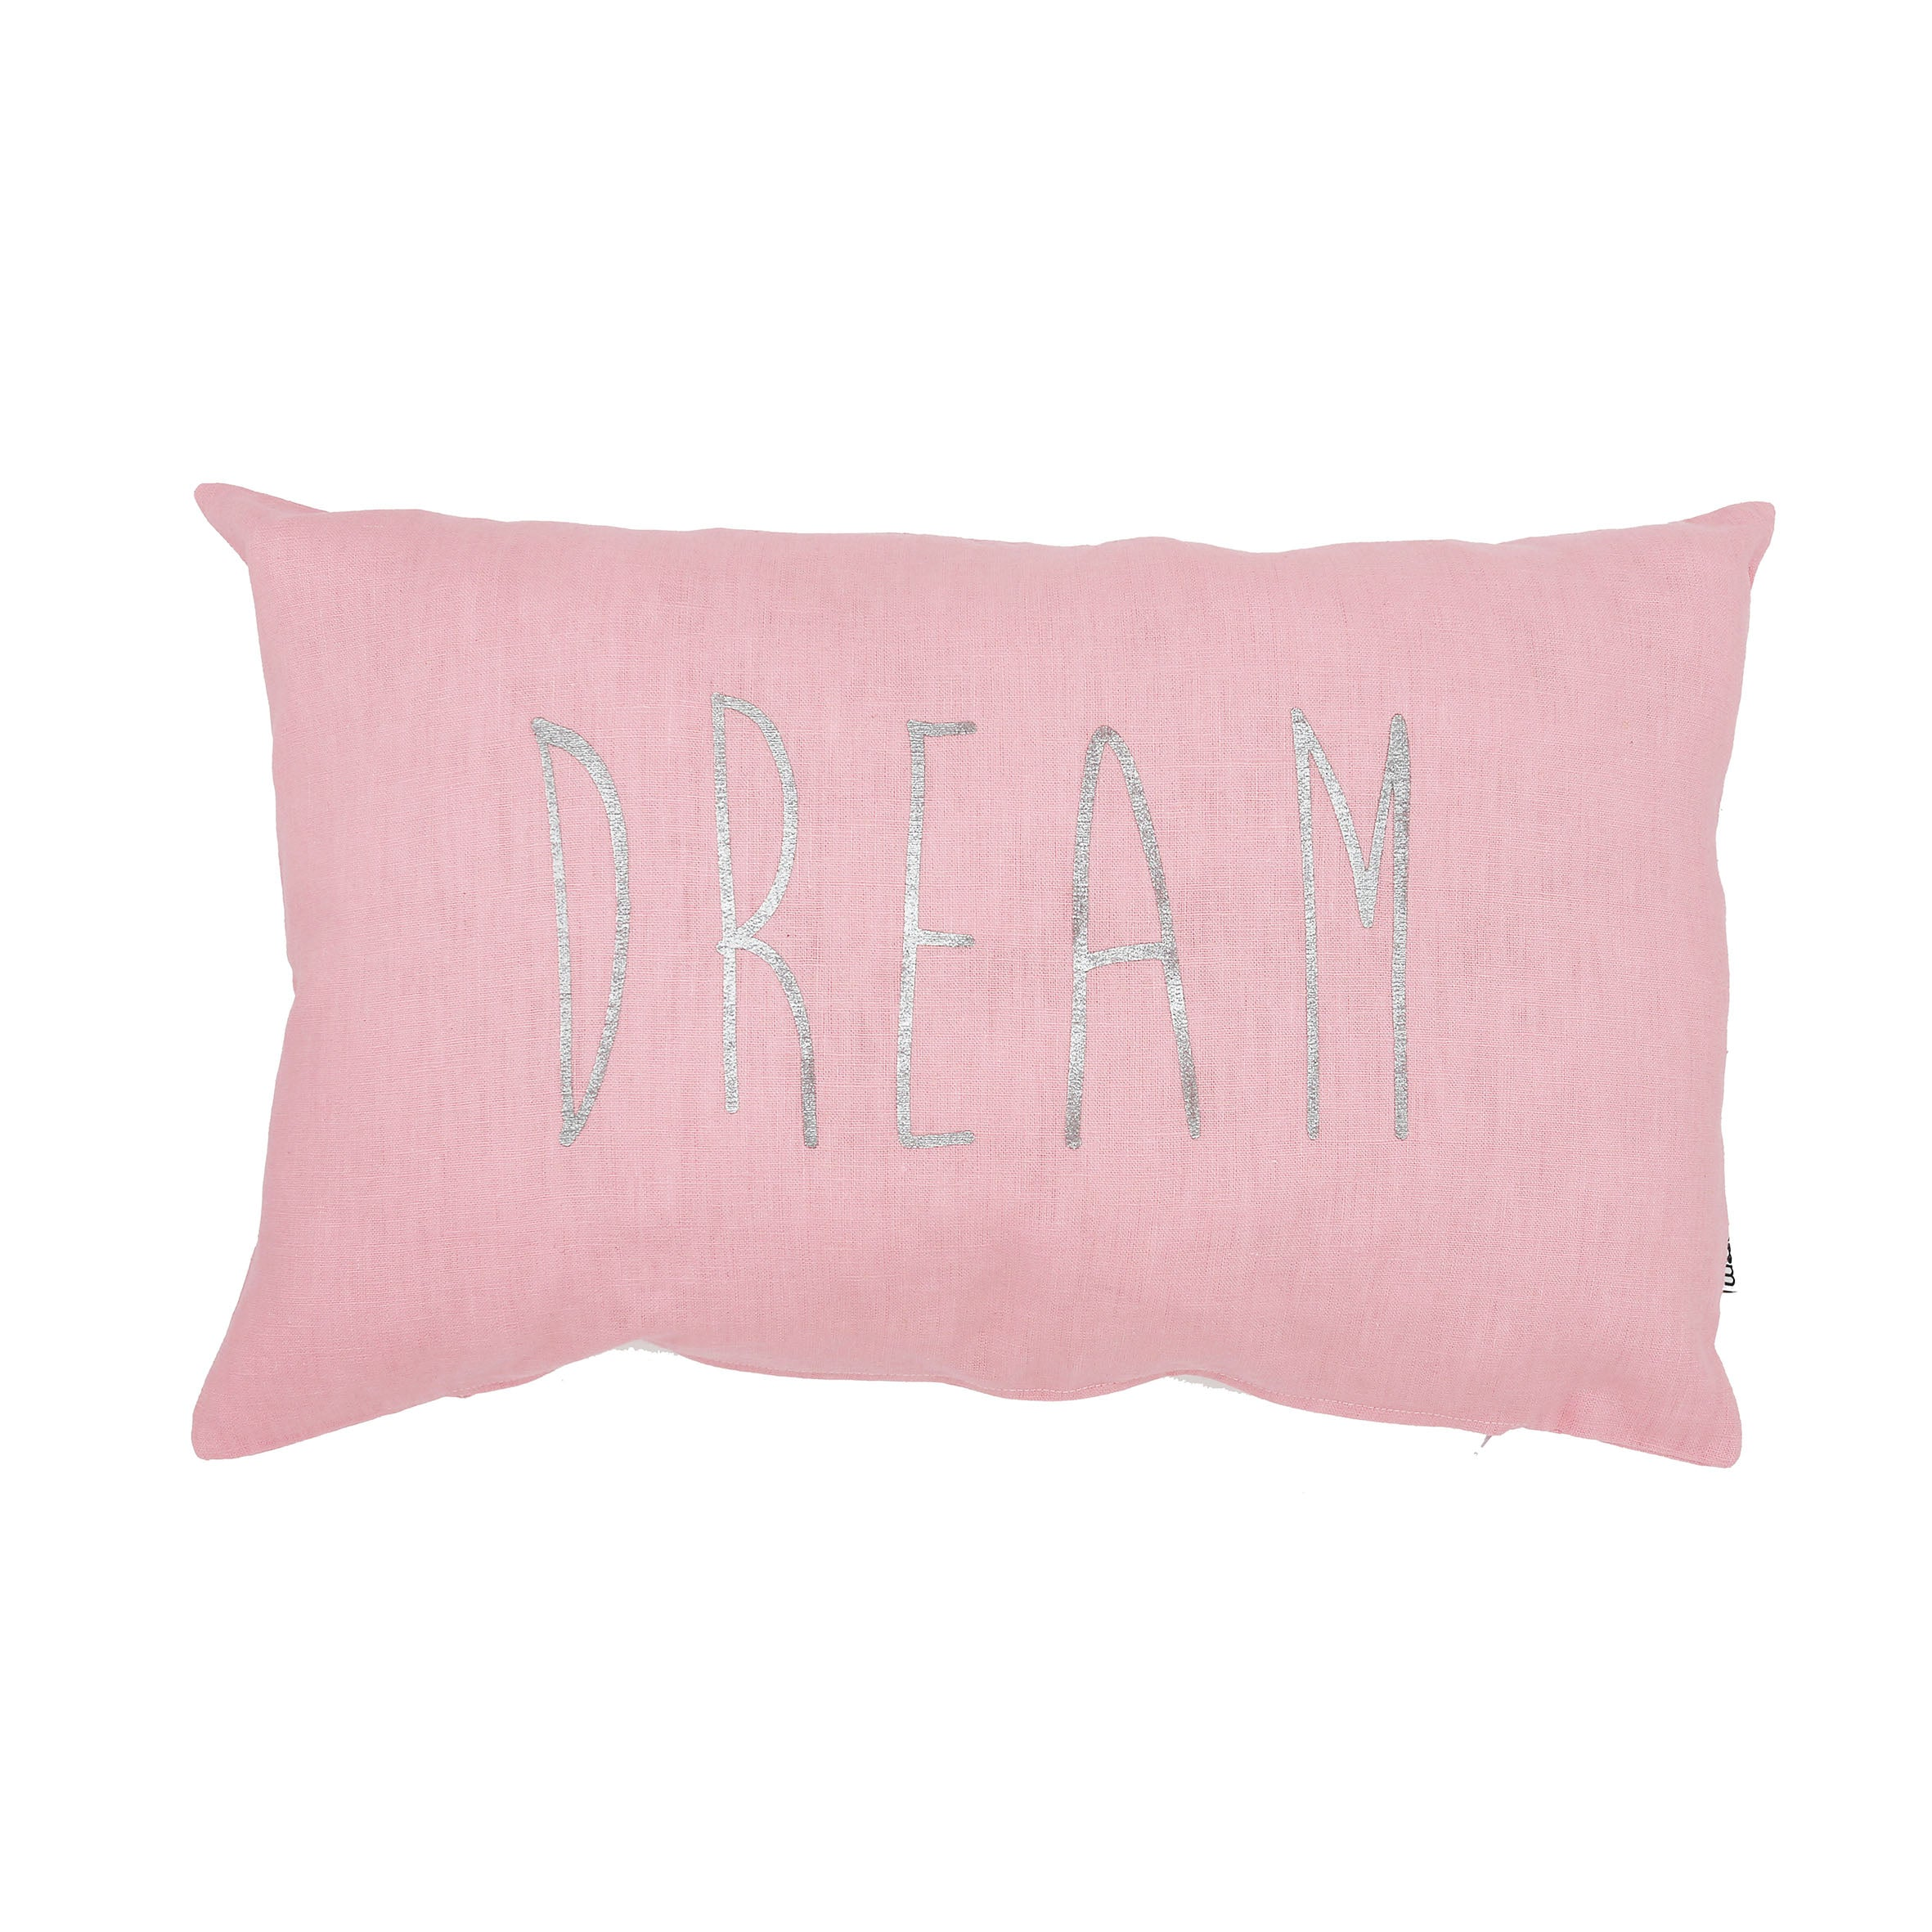 Handmade Cushion (Dream) - Pink